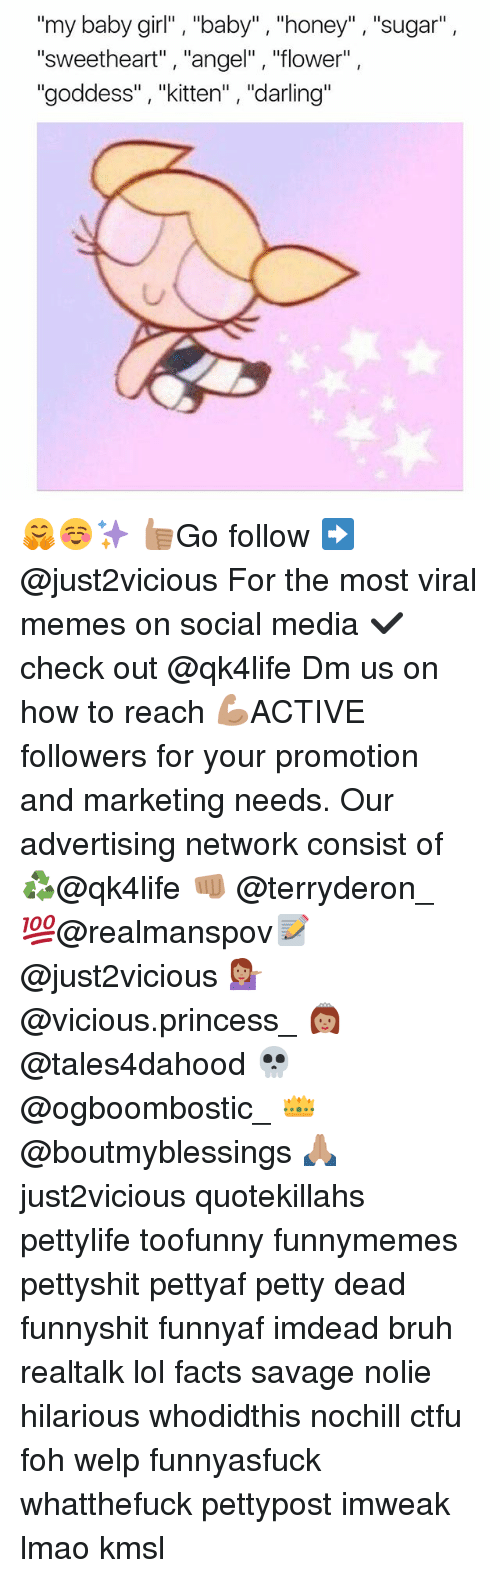 """Bruh, Ctfu, and Facts: """"my baby girl"""" """"baby"""", """"honey"""", """"sugar""""  sweetheart  angel""""  flower  """"goddess"""", Kitten  darling 🤗☺️✨ 👍🏽Go follow ➡@just2vicious For the most viral memes on social media ✔check out @qk4life Dm us on how to reach 💪🏽ACTIVE followers for your promotion and marketing needs. Our advertising network consist of ♻@qk4life 👊🏽 @terryderon_ 💯@realmanspov📝 @just2vicious 💁🏽 @vicious.princess_ 👸🏽@tales4dahood 💀 @ogboombostic_ 👑 @boutmyblessings 🙏🏽 just2vicious quotekillahs pettylife toofunny funnymemes pettyshit pettyaf petty dead funnyshit funnyaf imdead bruh realtalk lol facts savage nolie hilarious whodidthis nochill ctfu foh welp funnyasfuck whatthefuck pettypost imweak lmao kmsl"""